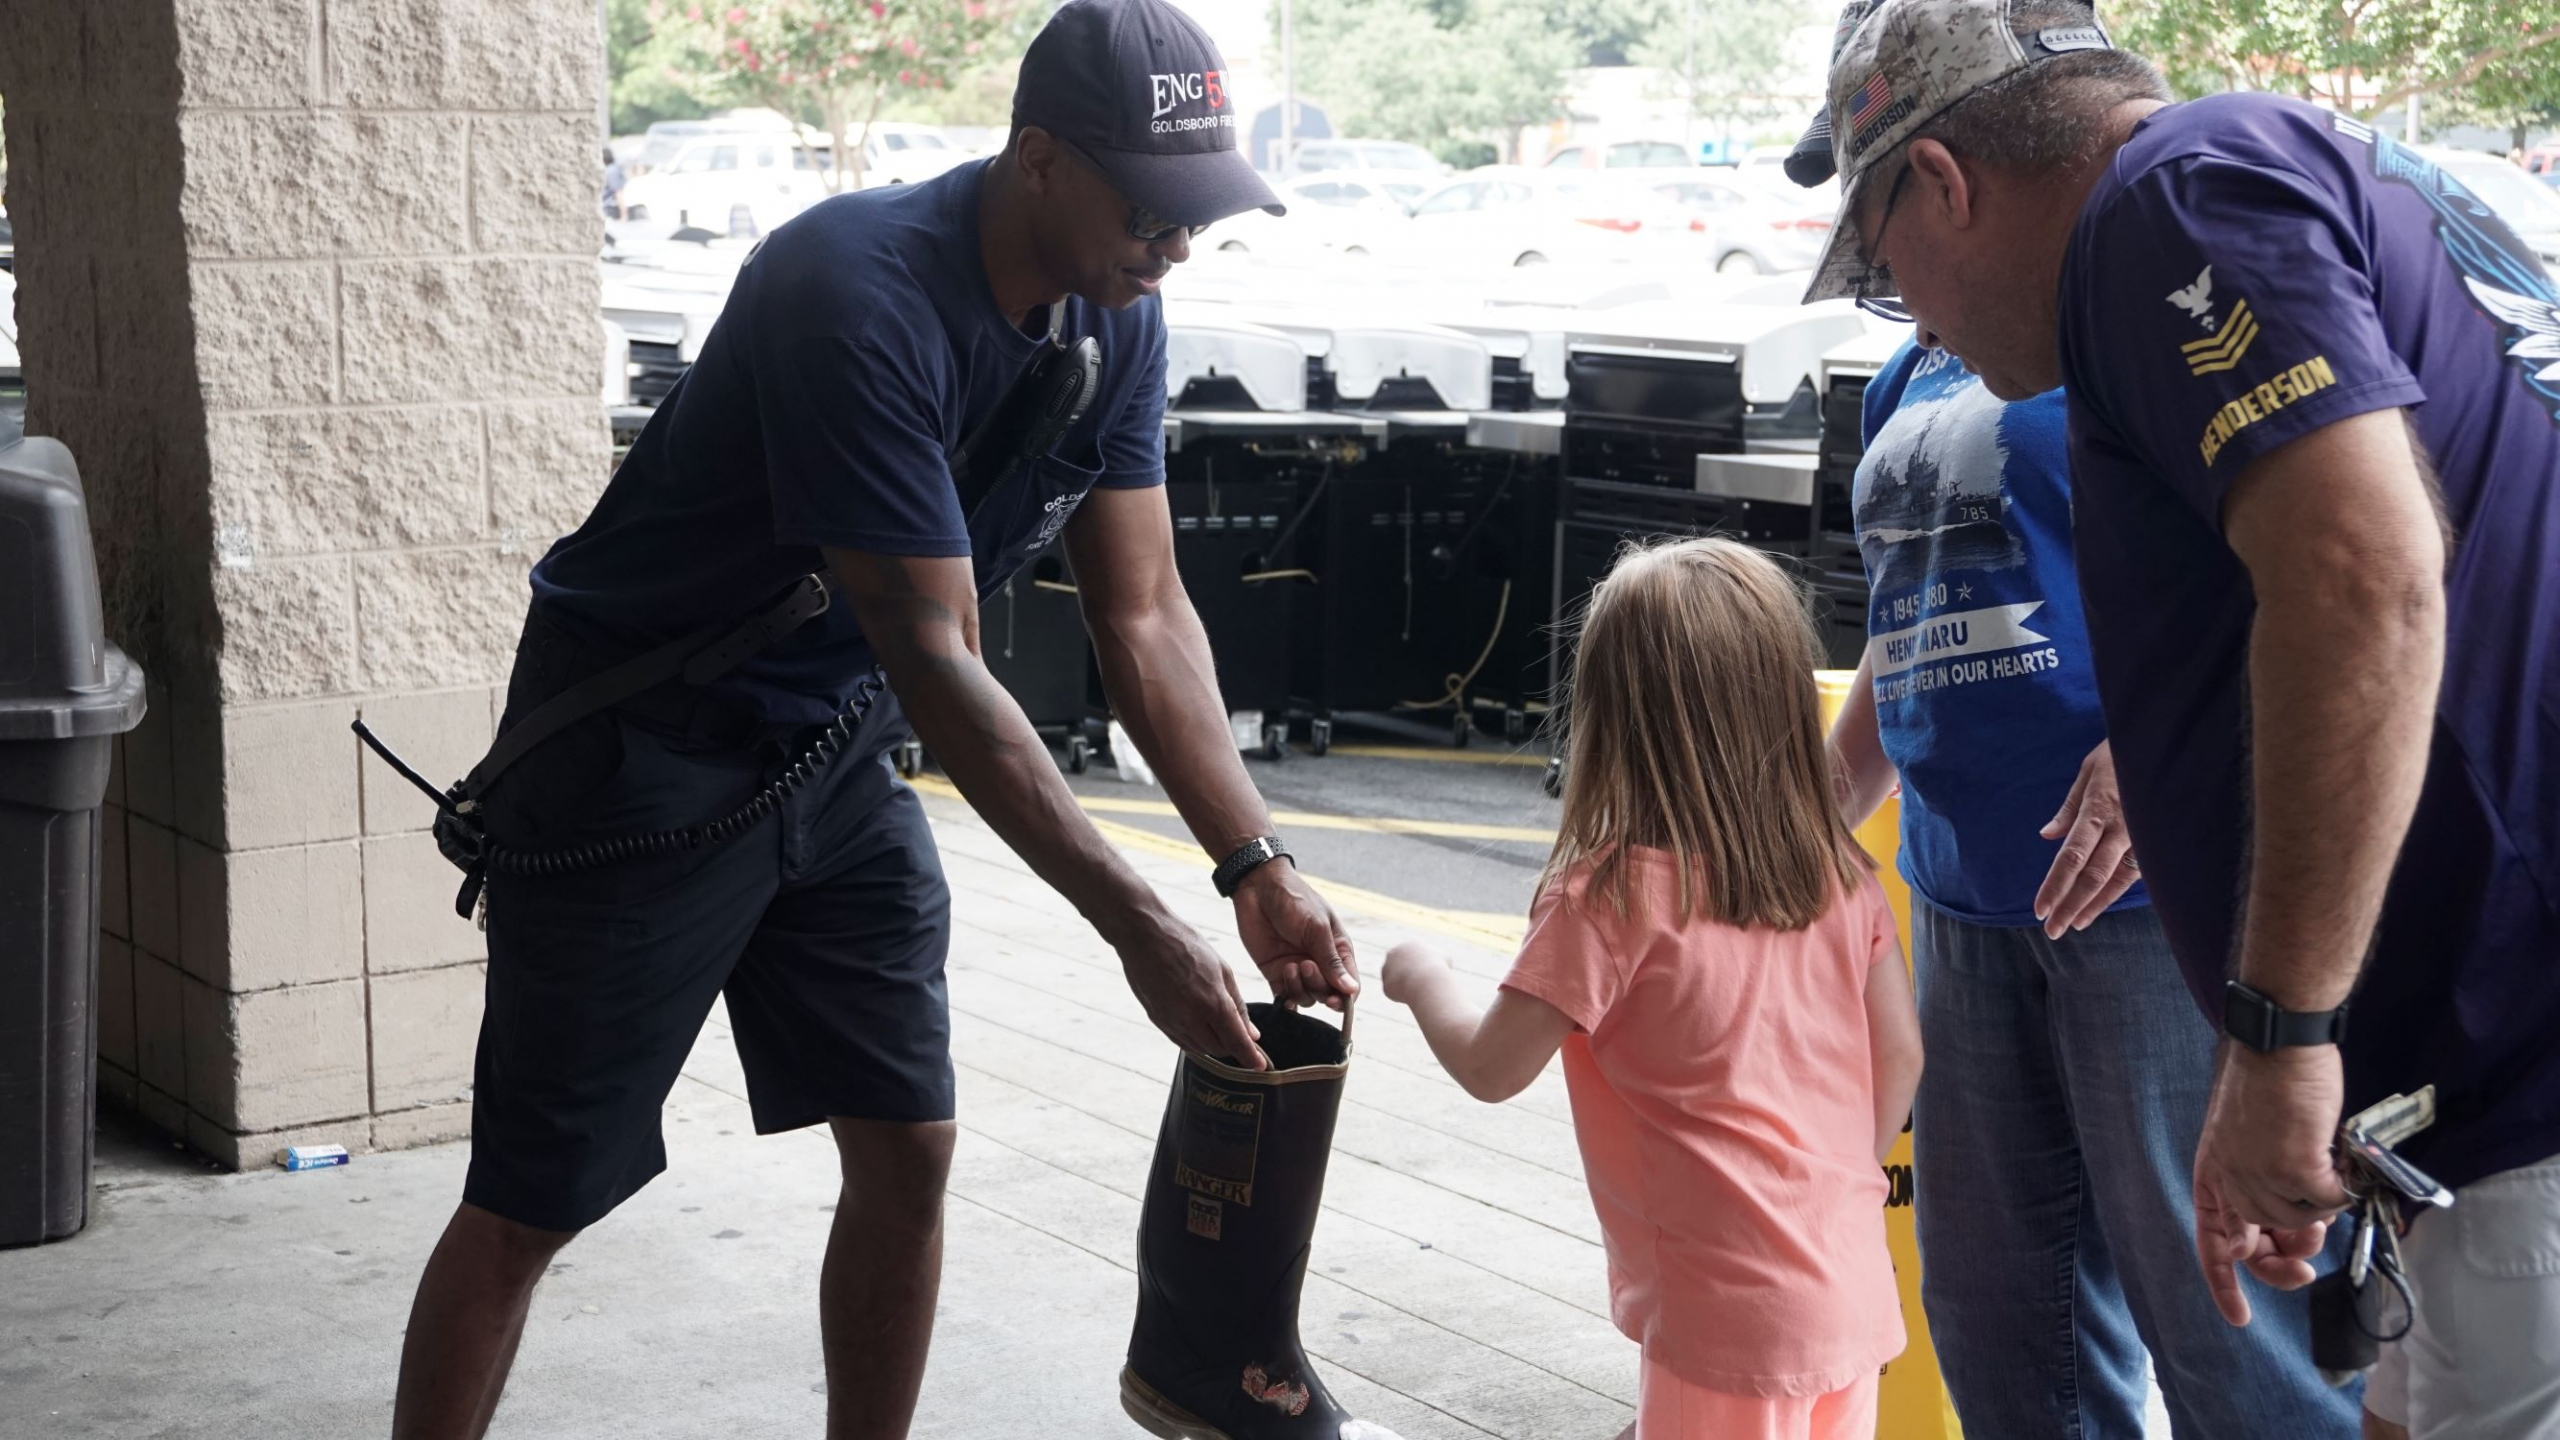 Firefighters Raise Over $8,000 For MDA During Three Day Effort